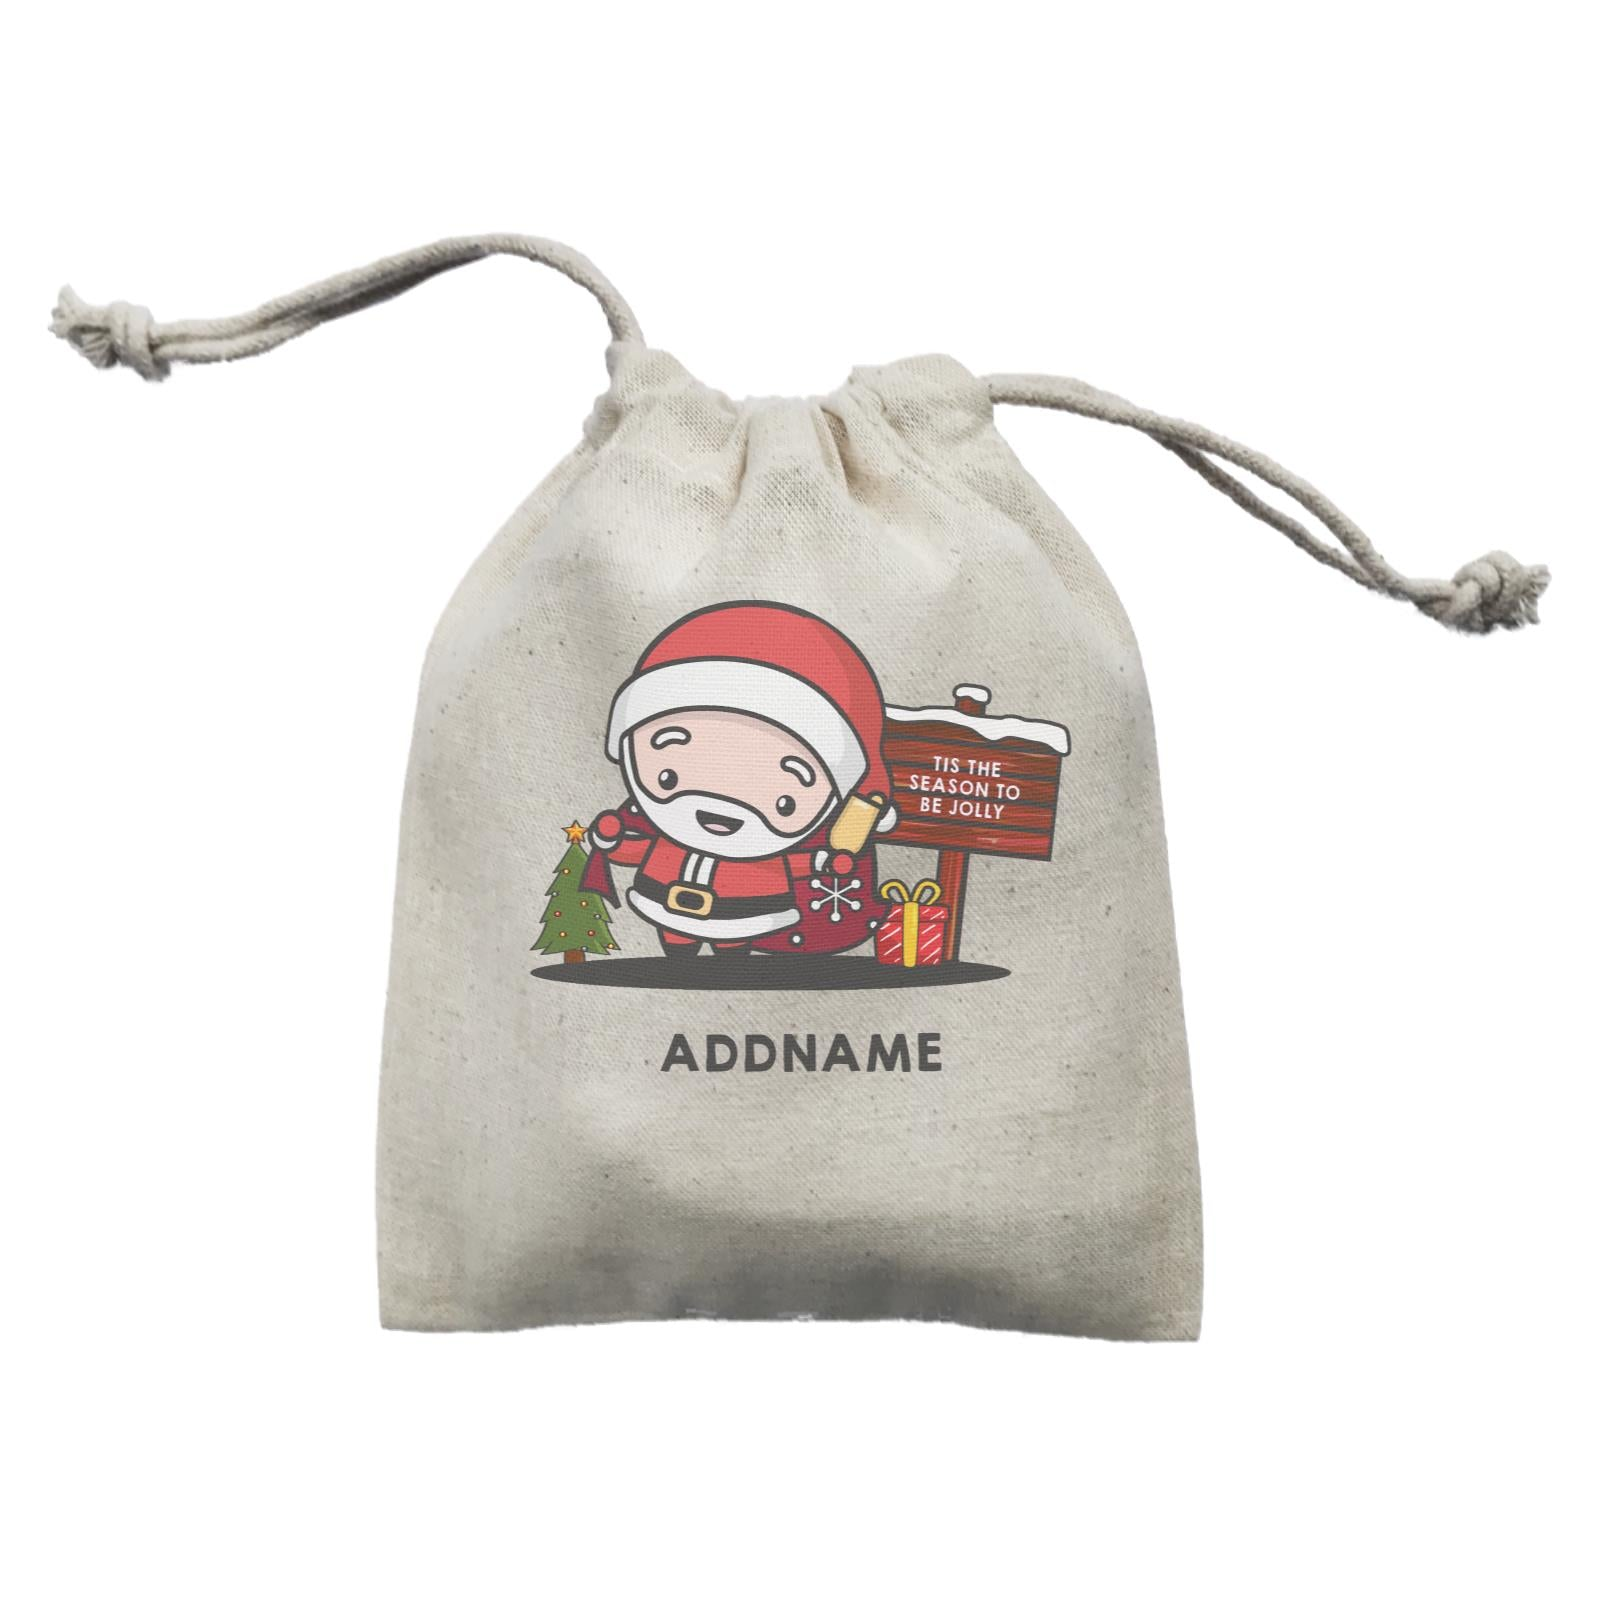 Christmas Cute Jolly Series Santa Addname Mini Accessories Mini Pouch